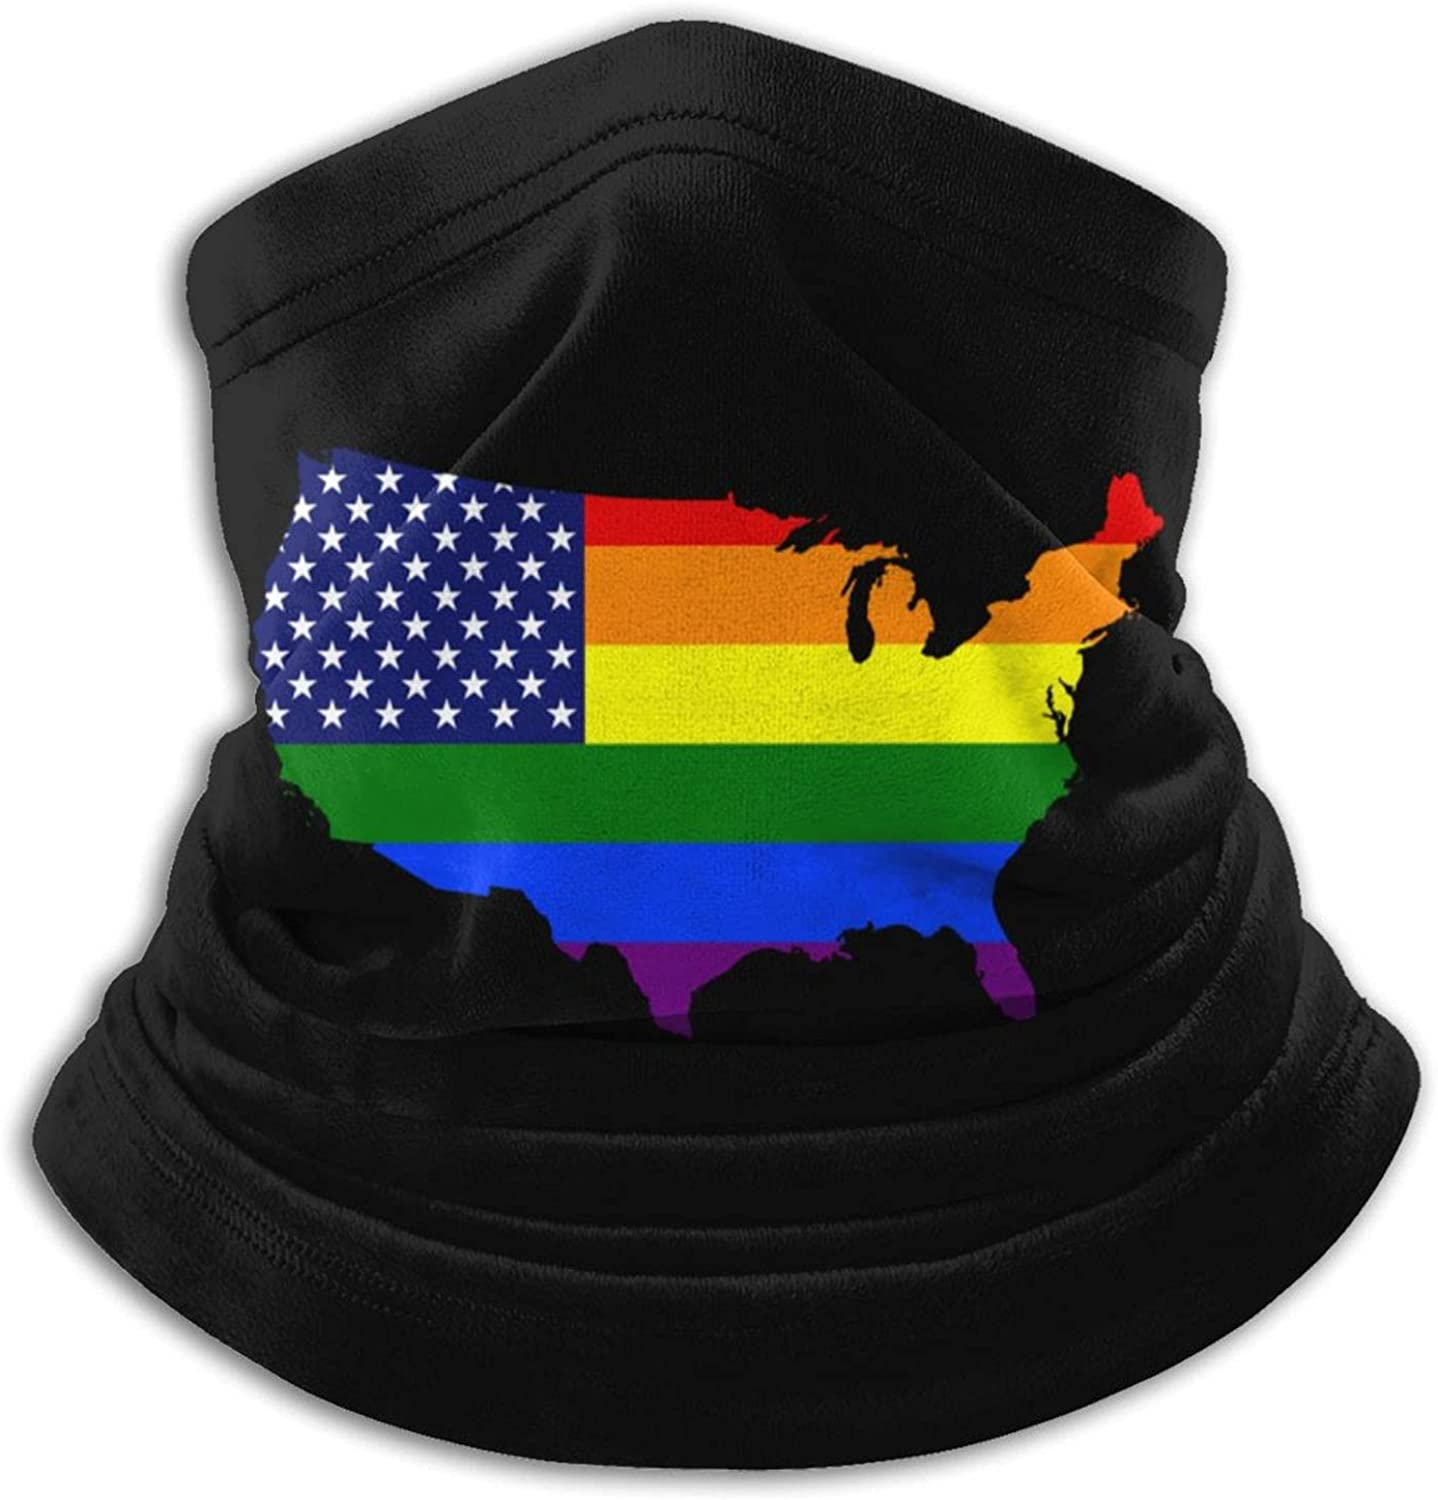 Gay lesbian pride lgbt america rainbow flag map unisex winter neck gaiter face cover mask, windproof balaclava scarf for fishing, running & hiking